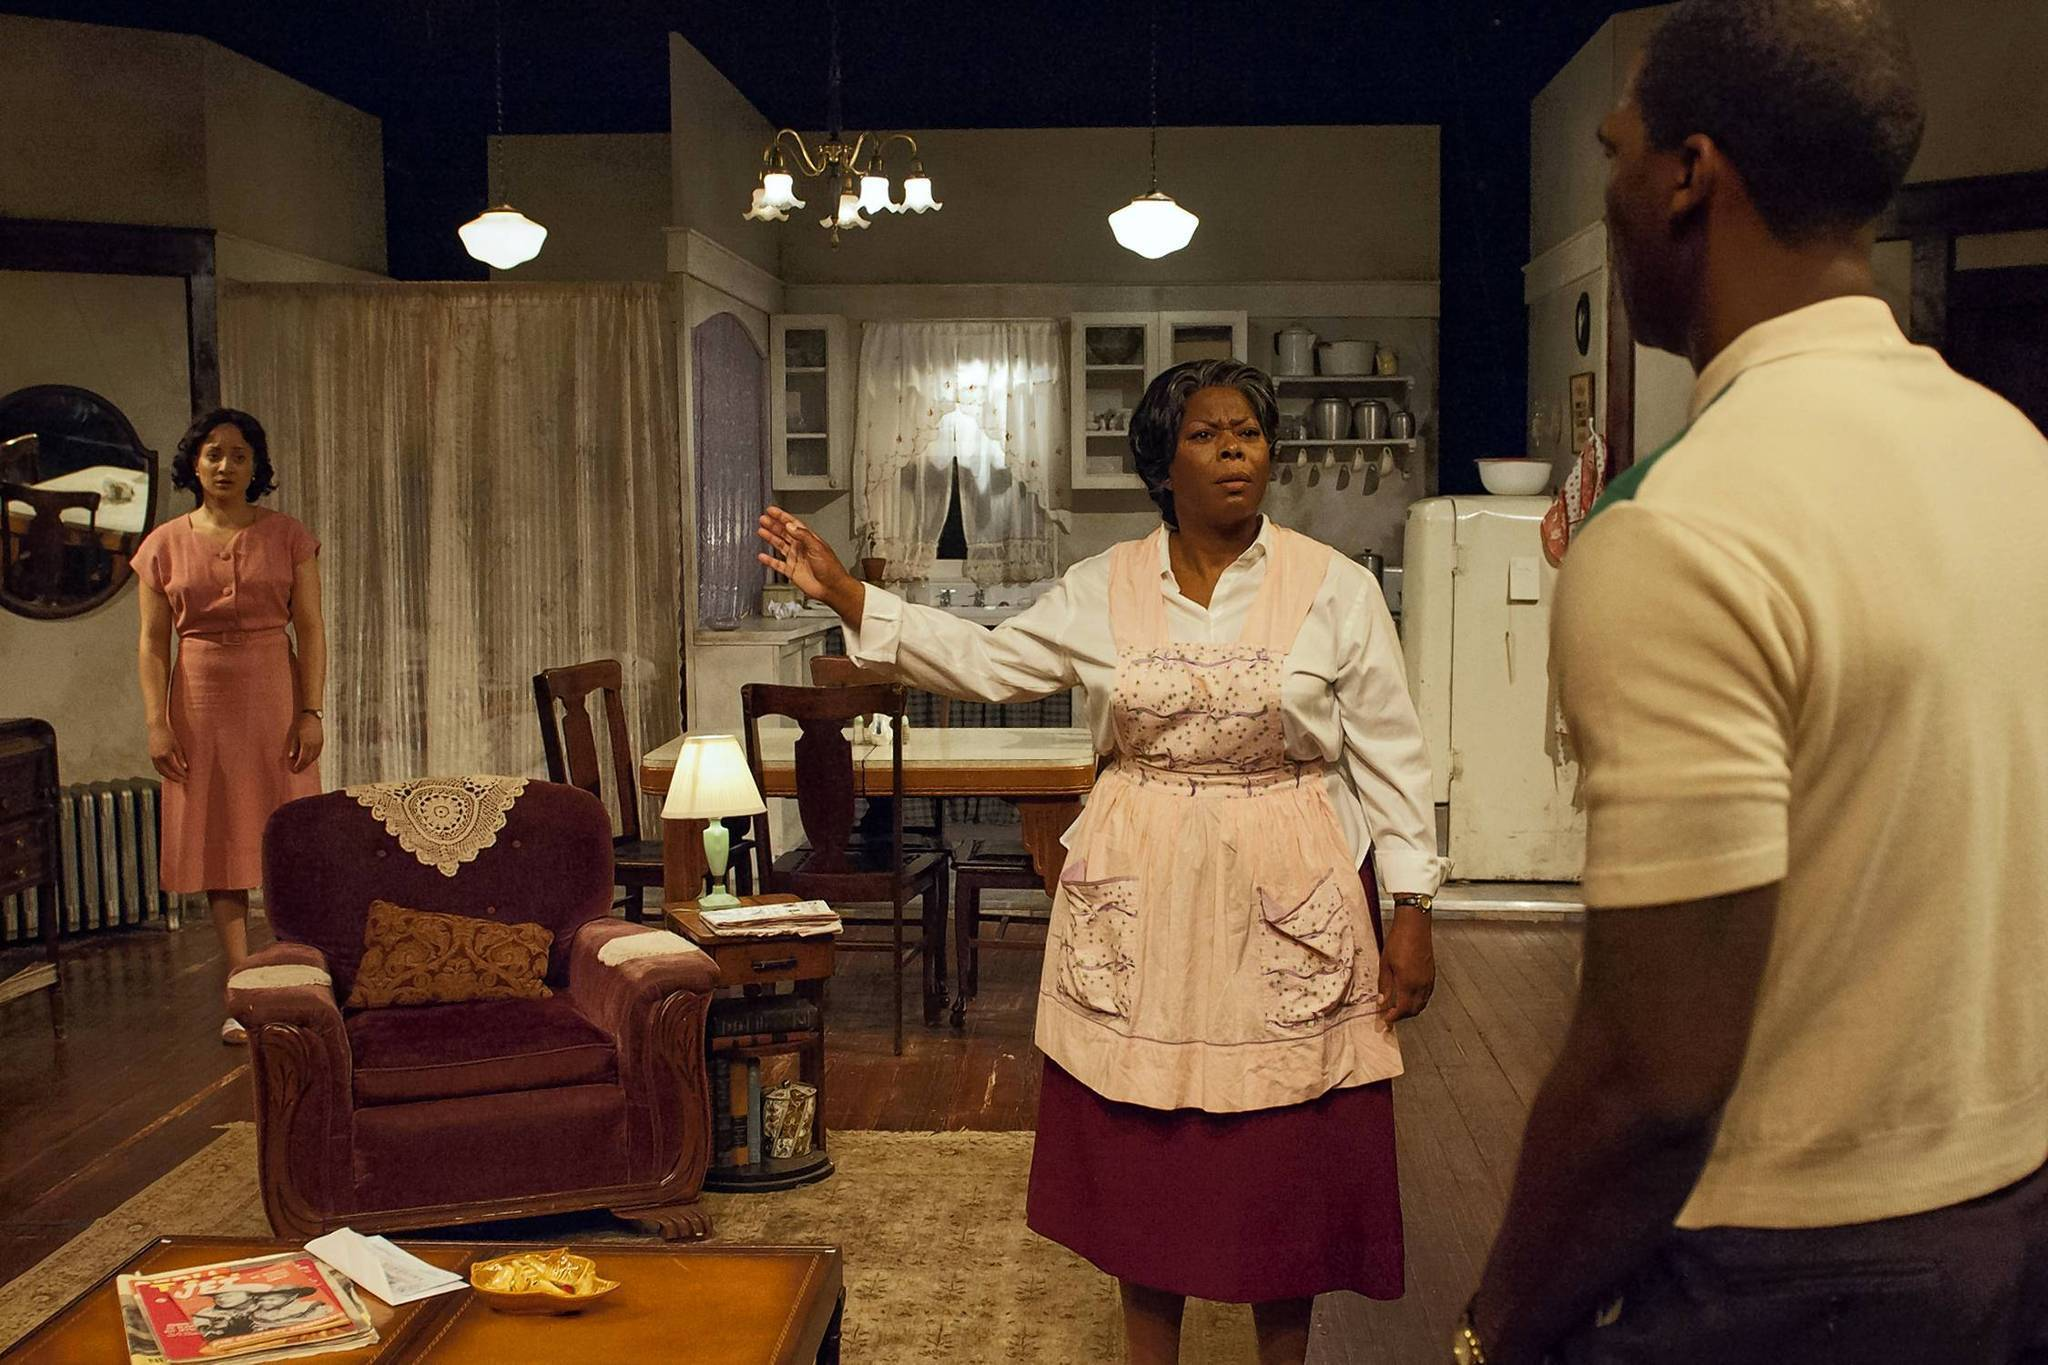 A Raisin in the Sun and the American dream - a good topic for an essay